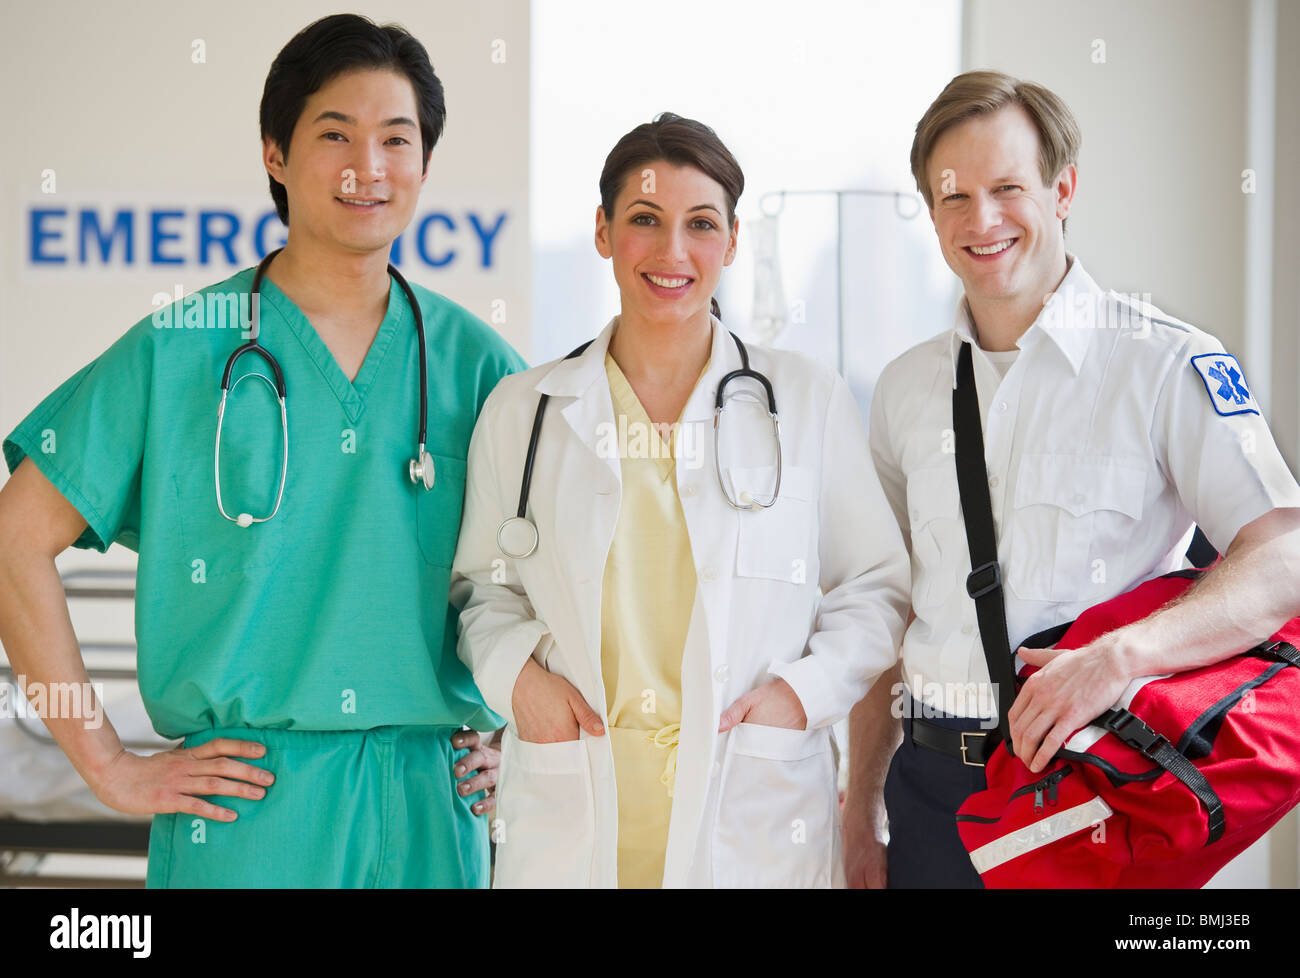 Healthcare workers in emergency room - Stock Image